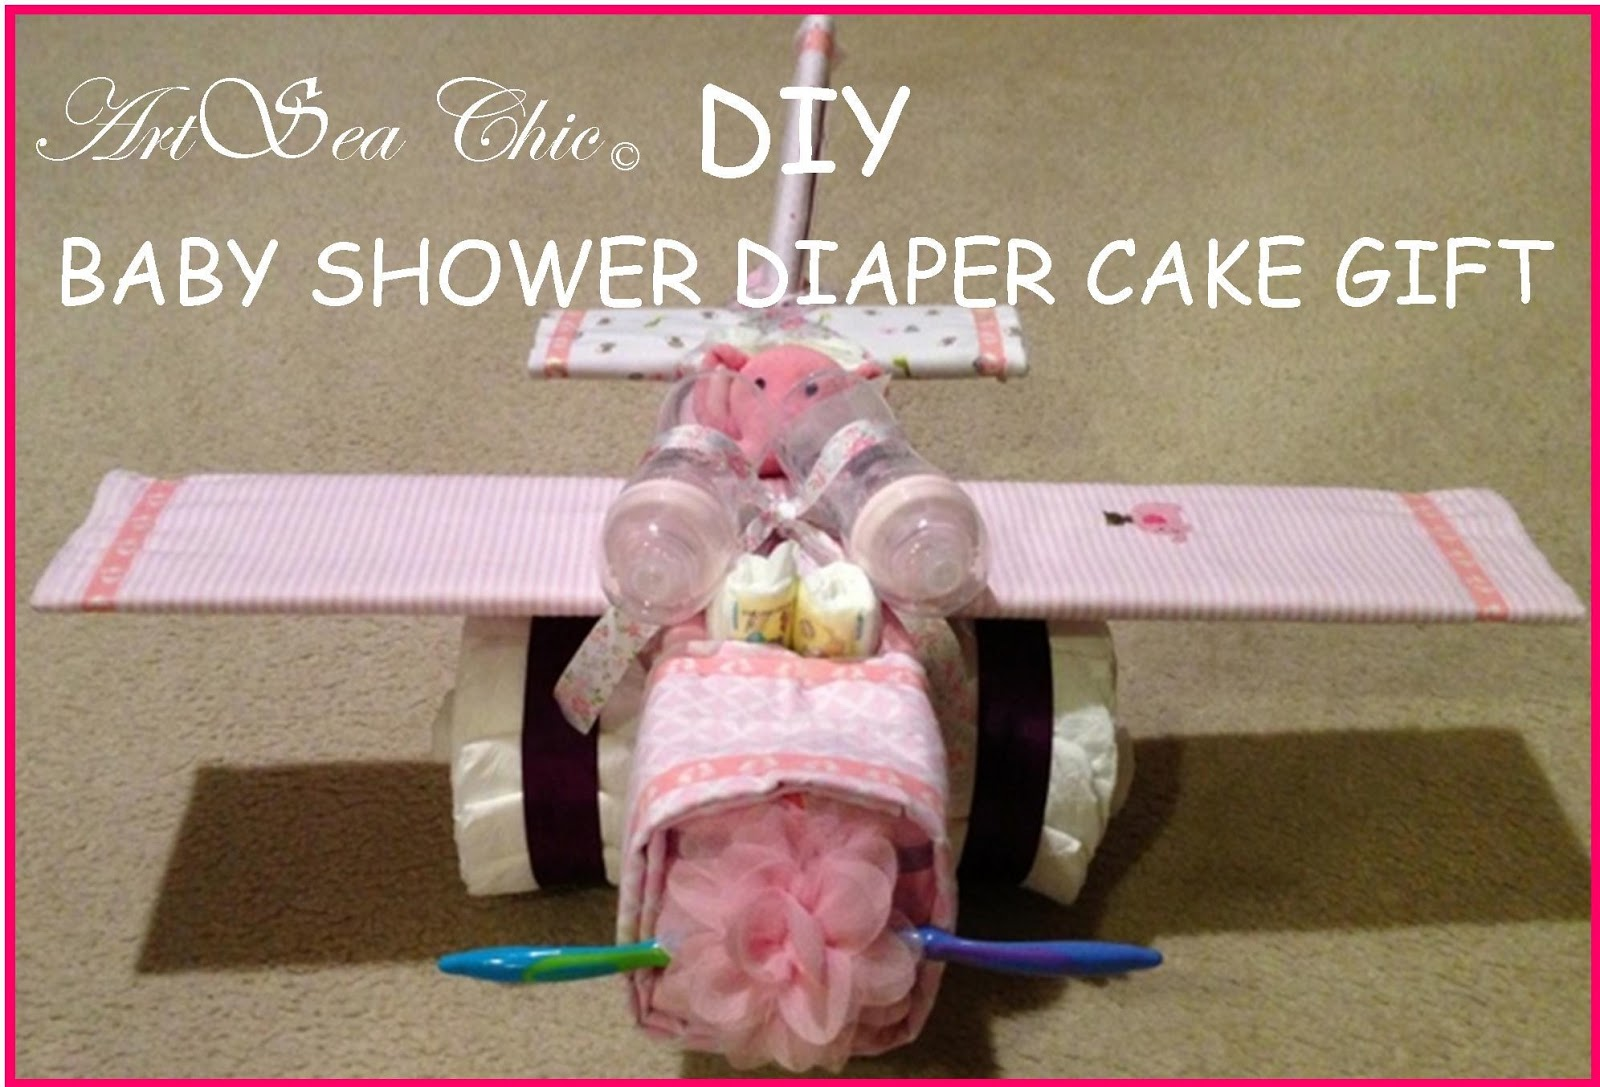 artsea chic diy baby shower airplane diaper cake gift